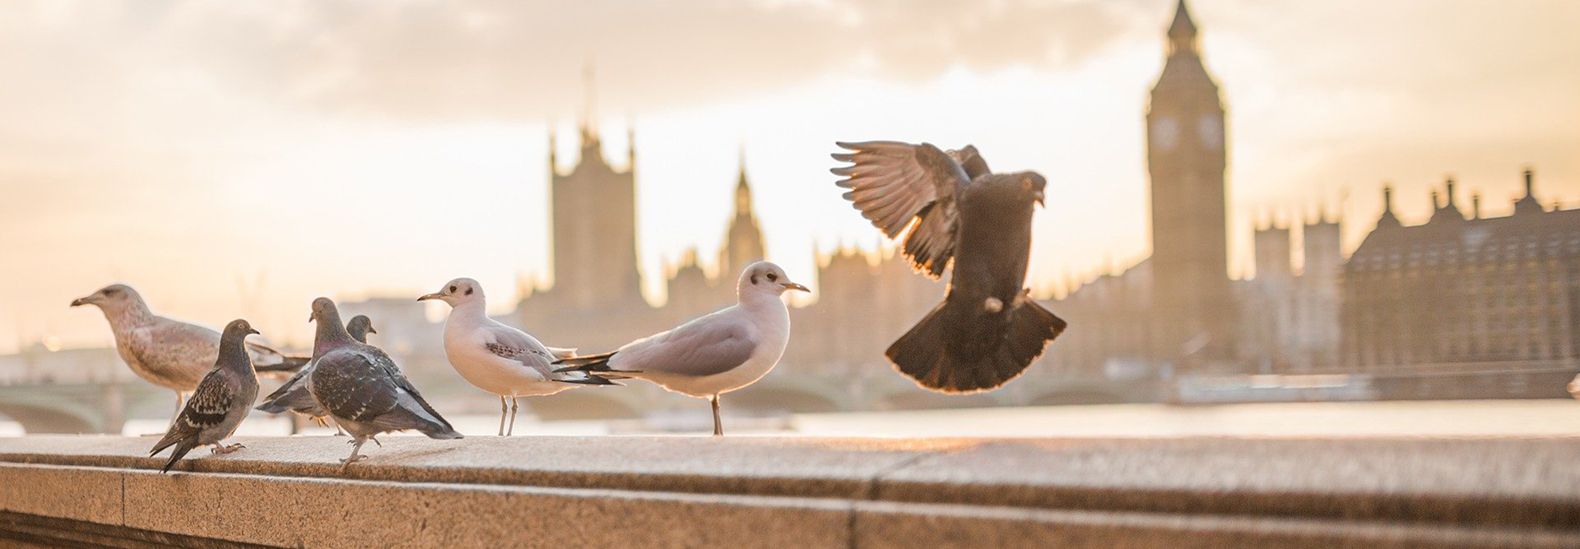 Could contraception for pigeons be a humane option for population control?